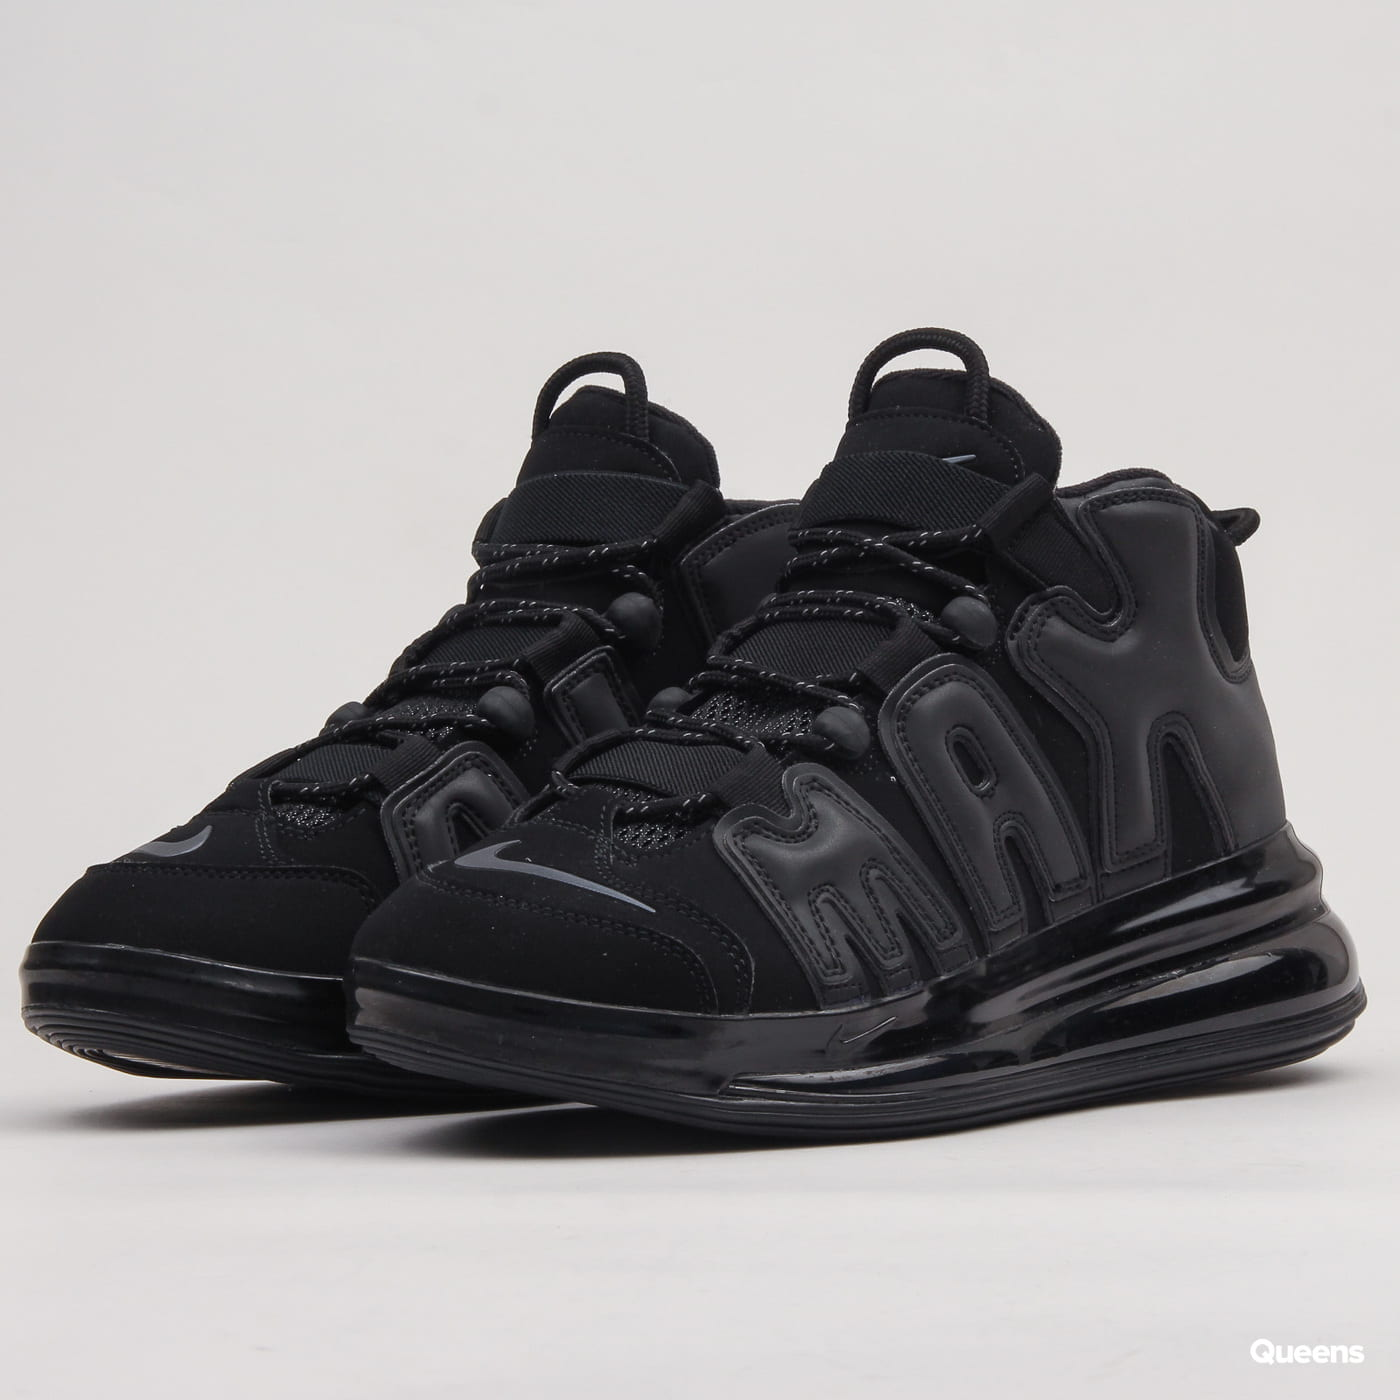 Sneakers Nike Air More Uptempo 720 QS 1